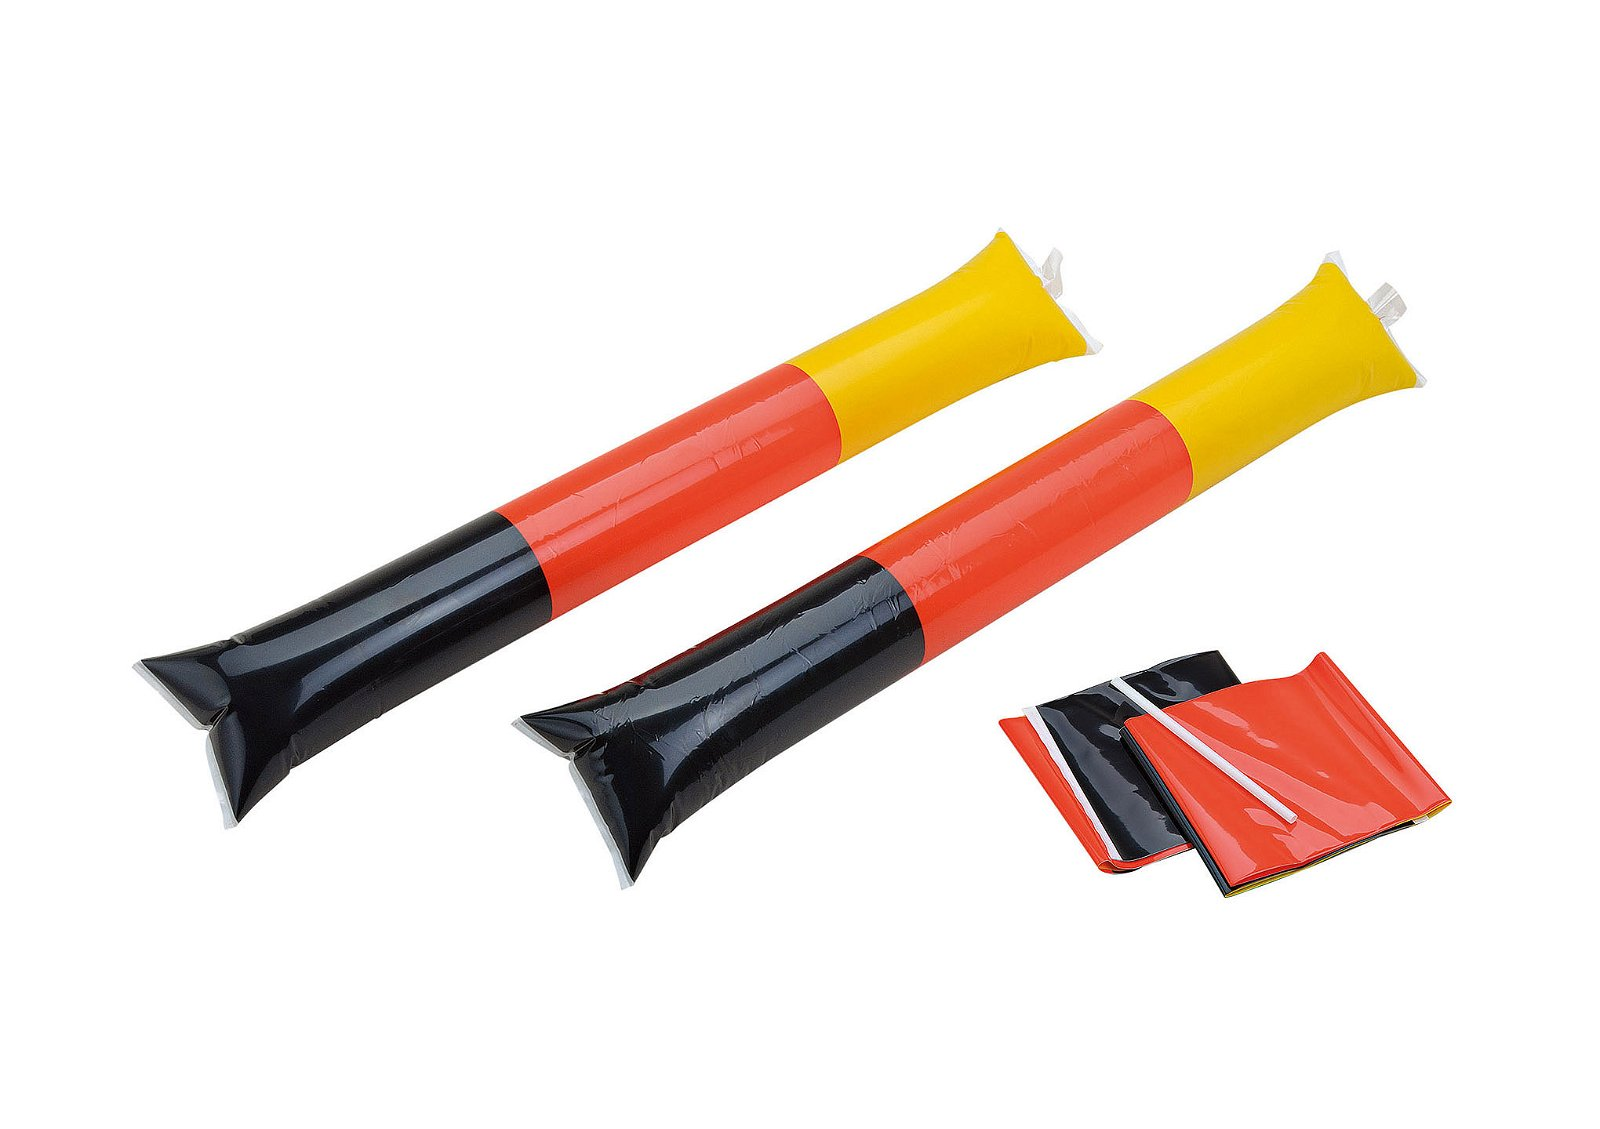 INFLATABLE STICK GERMANY PLASTIC 2-ASS. 10X60 CM